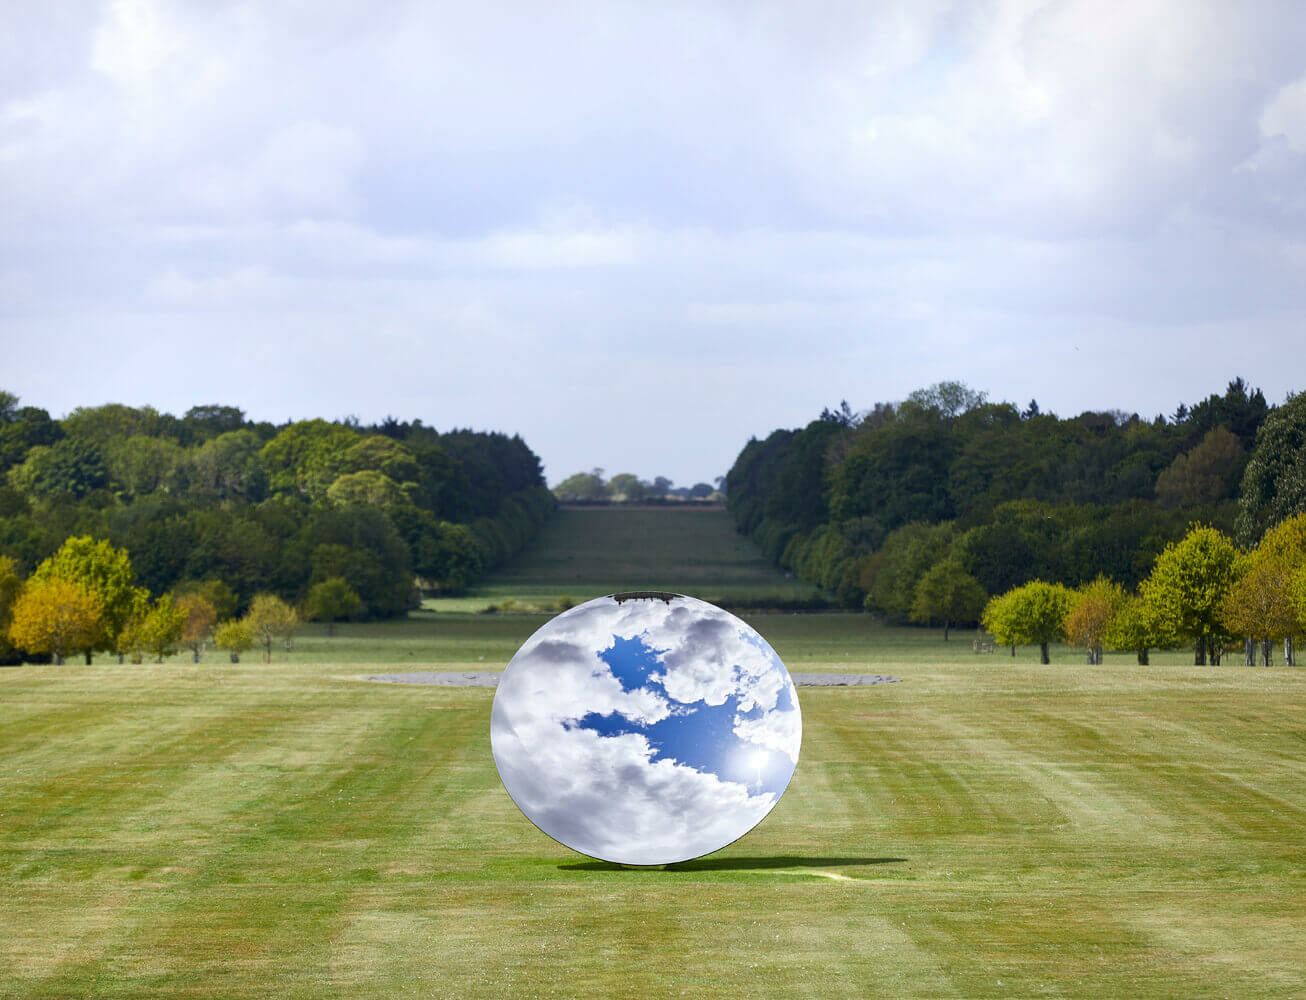 Major exhibition by Anish Kapoor opens at Houghton Hall